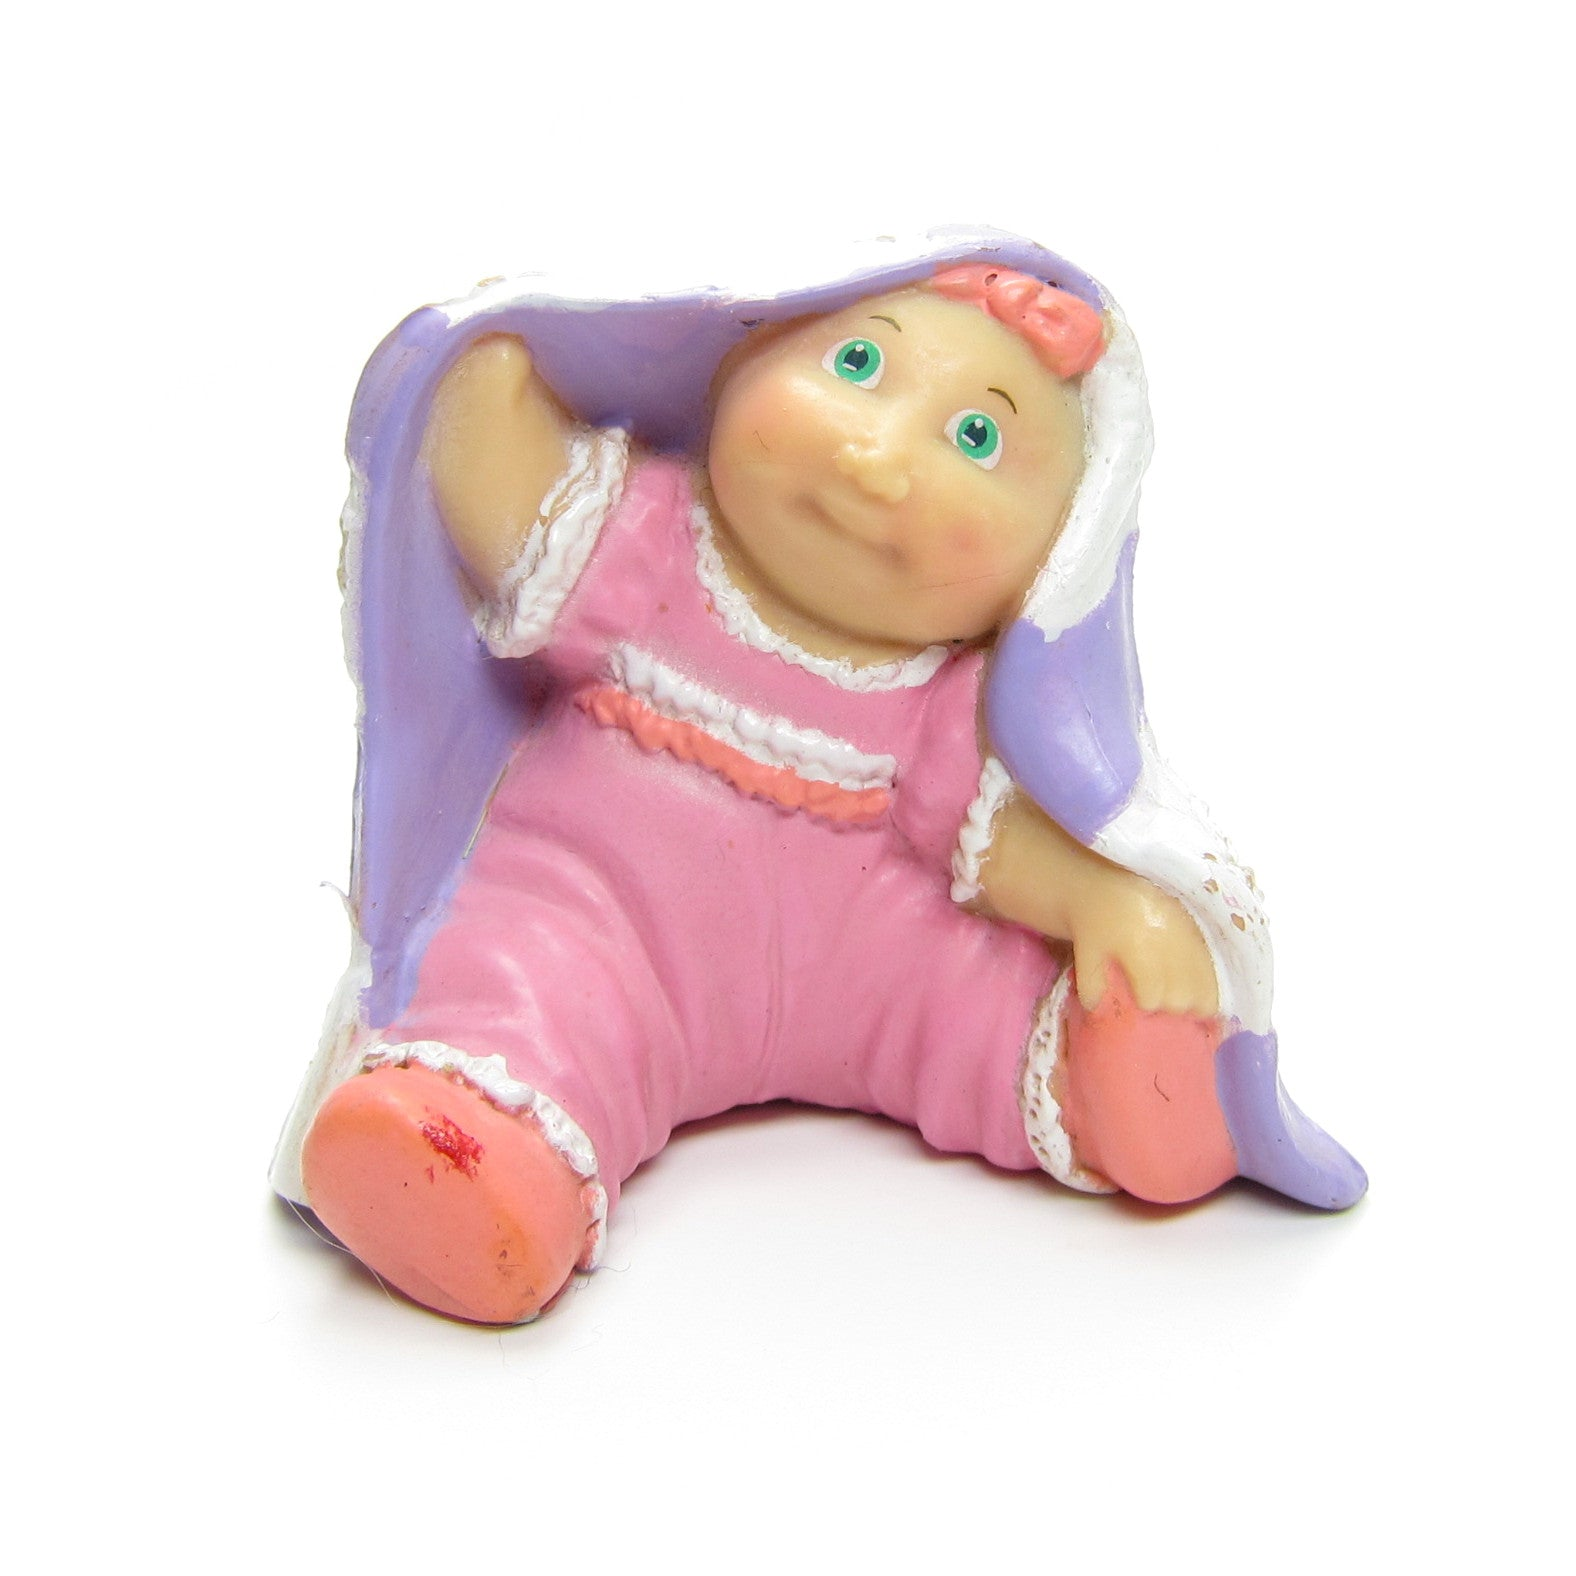 Cabbage Patch Kids Preemie under blanket miniature figurine